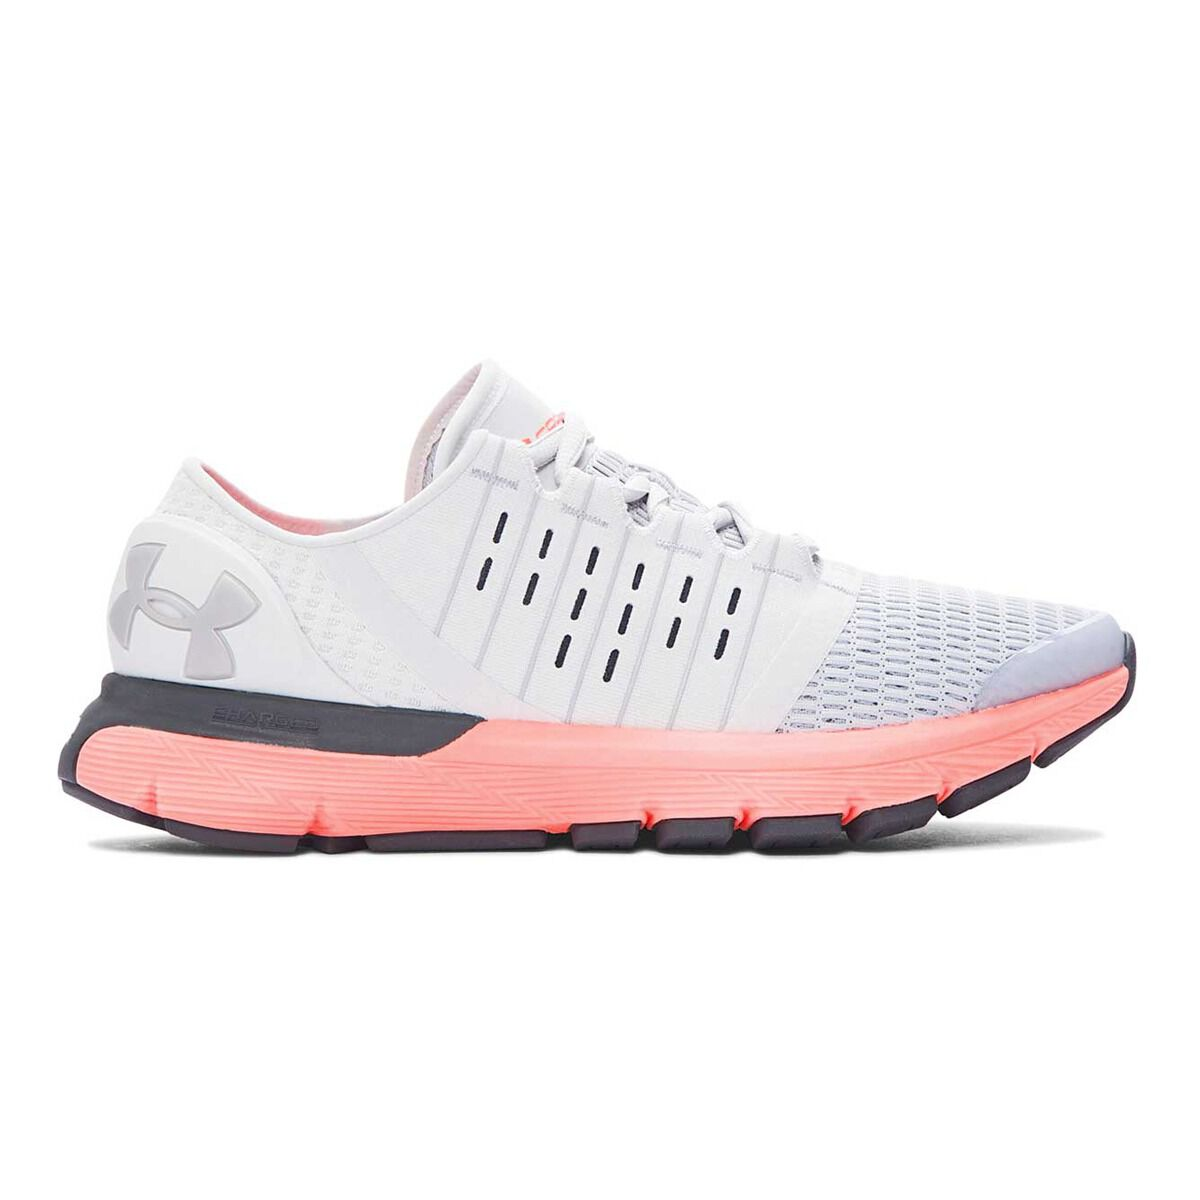 ddfade8aee08 ... aliexpress under armour speedform europa womens running shoes grey  orange us 6 grey orange 6bad2 ac977